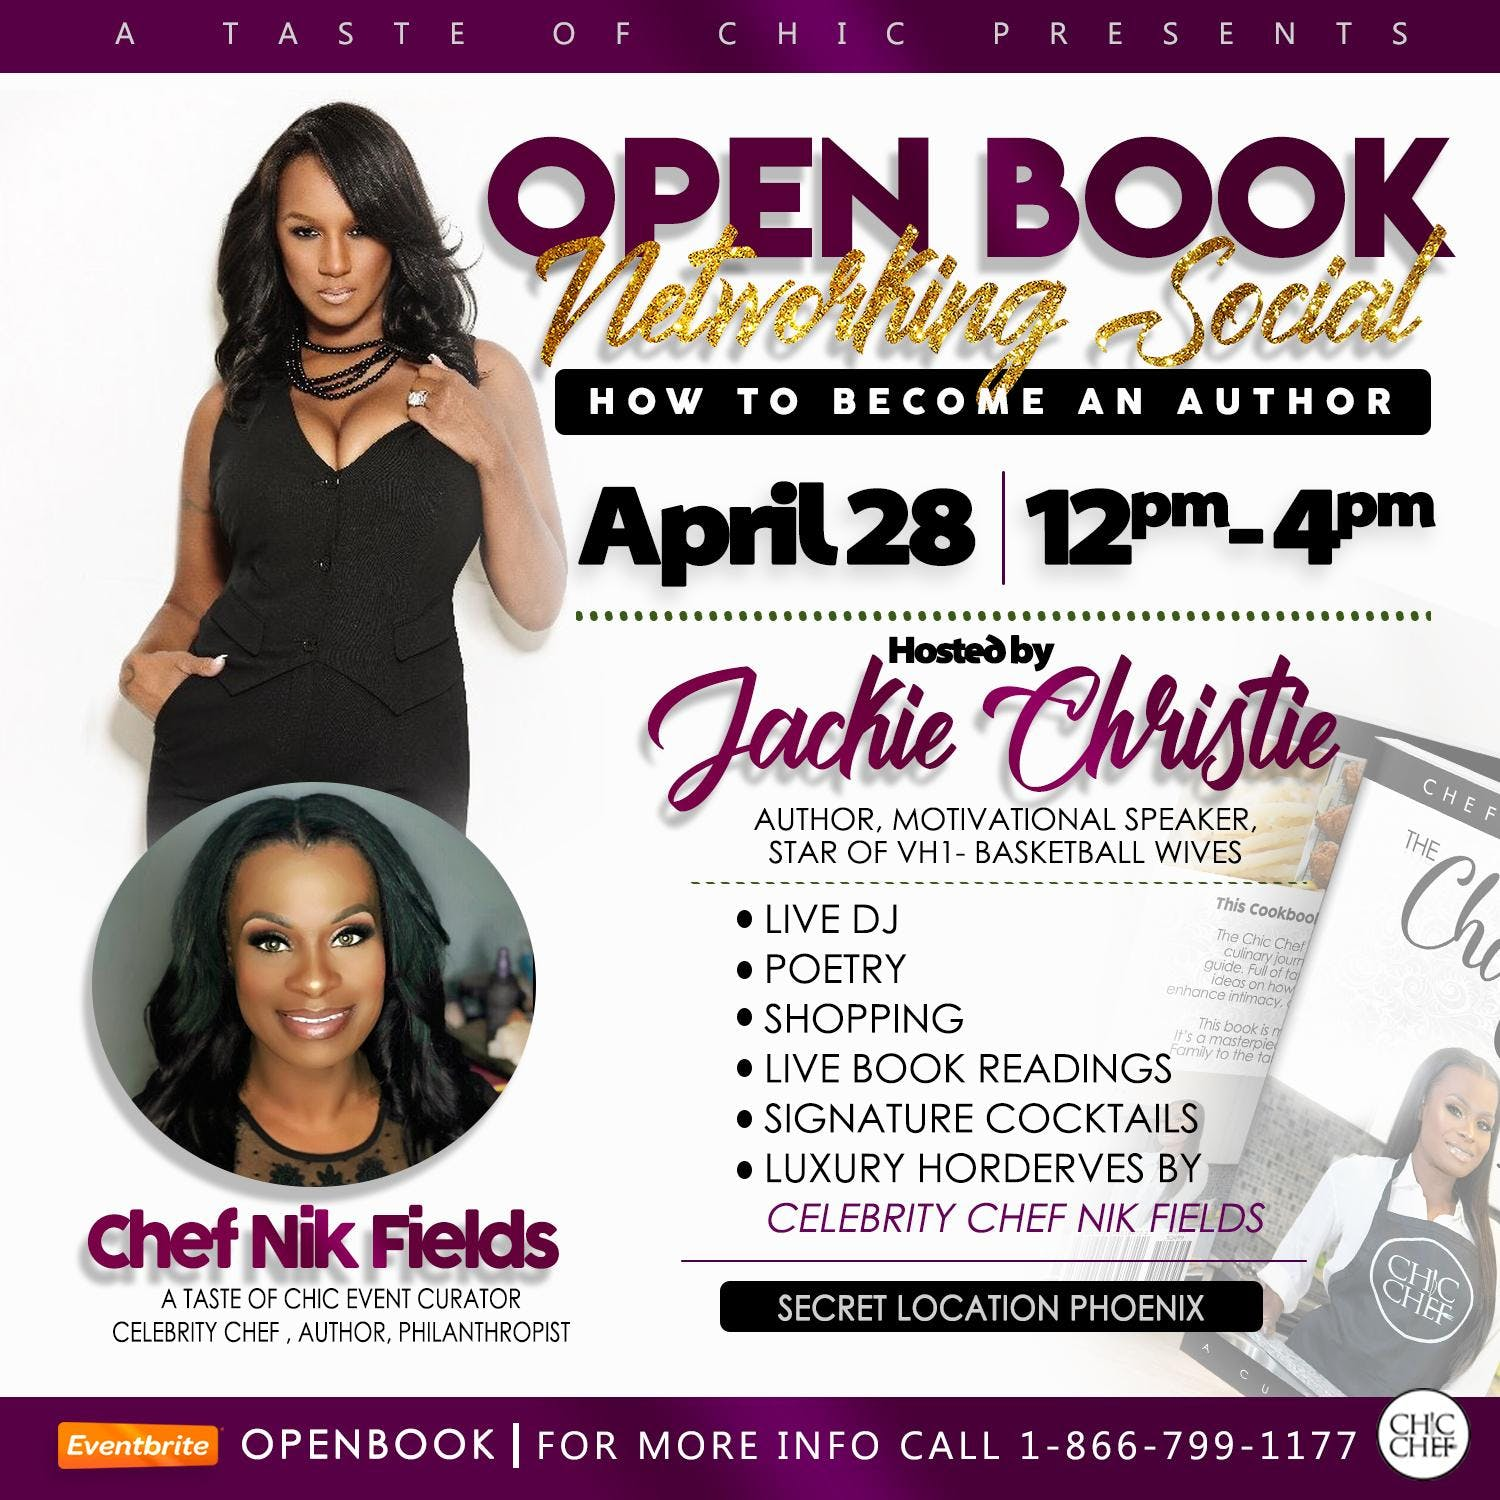 A Taste of Chic Presents: Openbook Networking Social